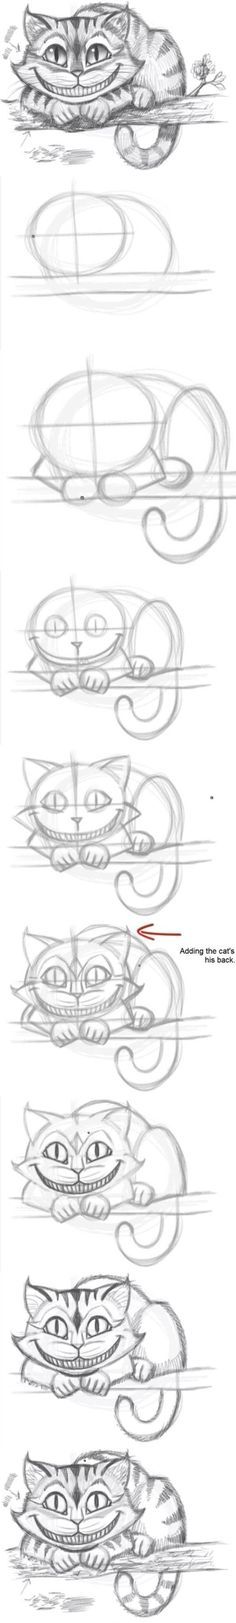 DIY Easily Draw the Cheshire Cat Tutorial LIKE Us https://www.facebook.com/UsefulDiy LOVED BY Art Ed Central xoxoxo See: How to draw like an artist